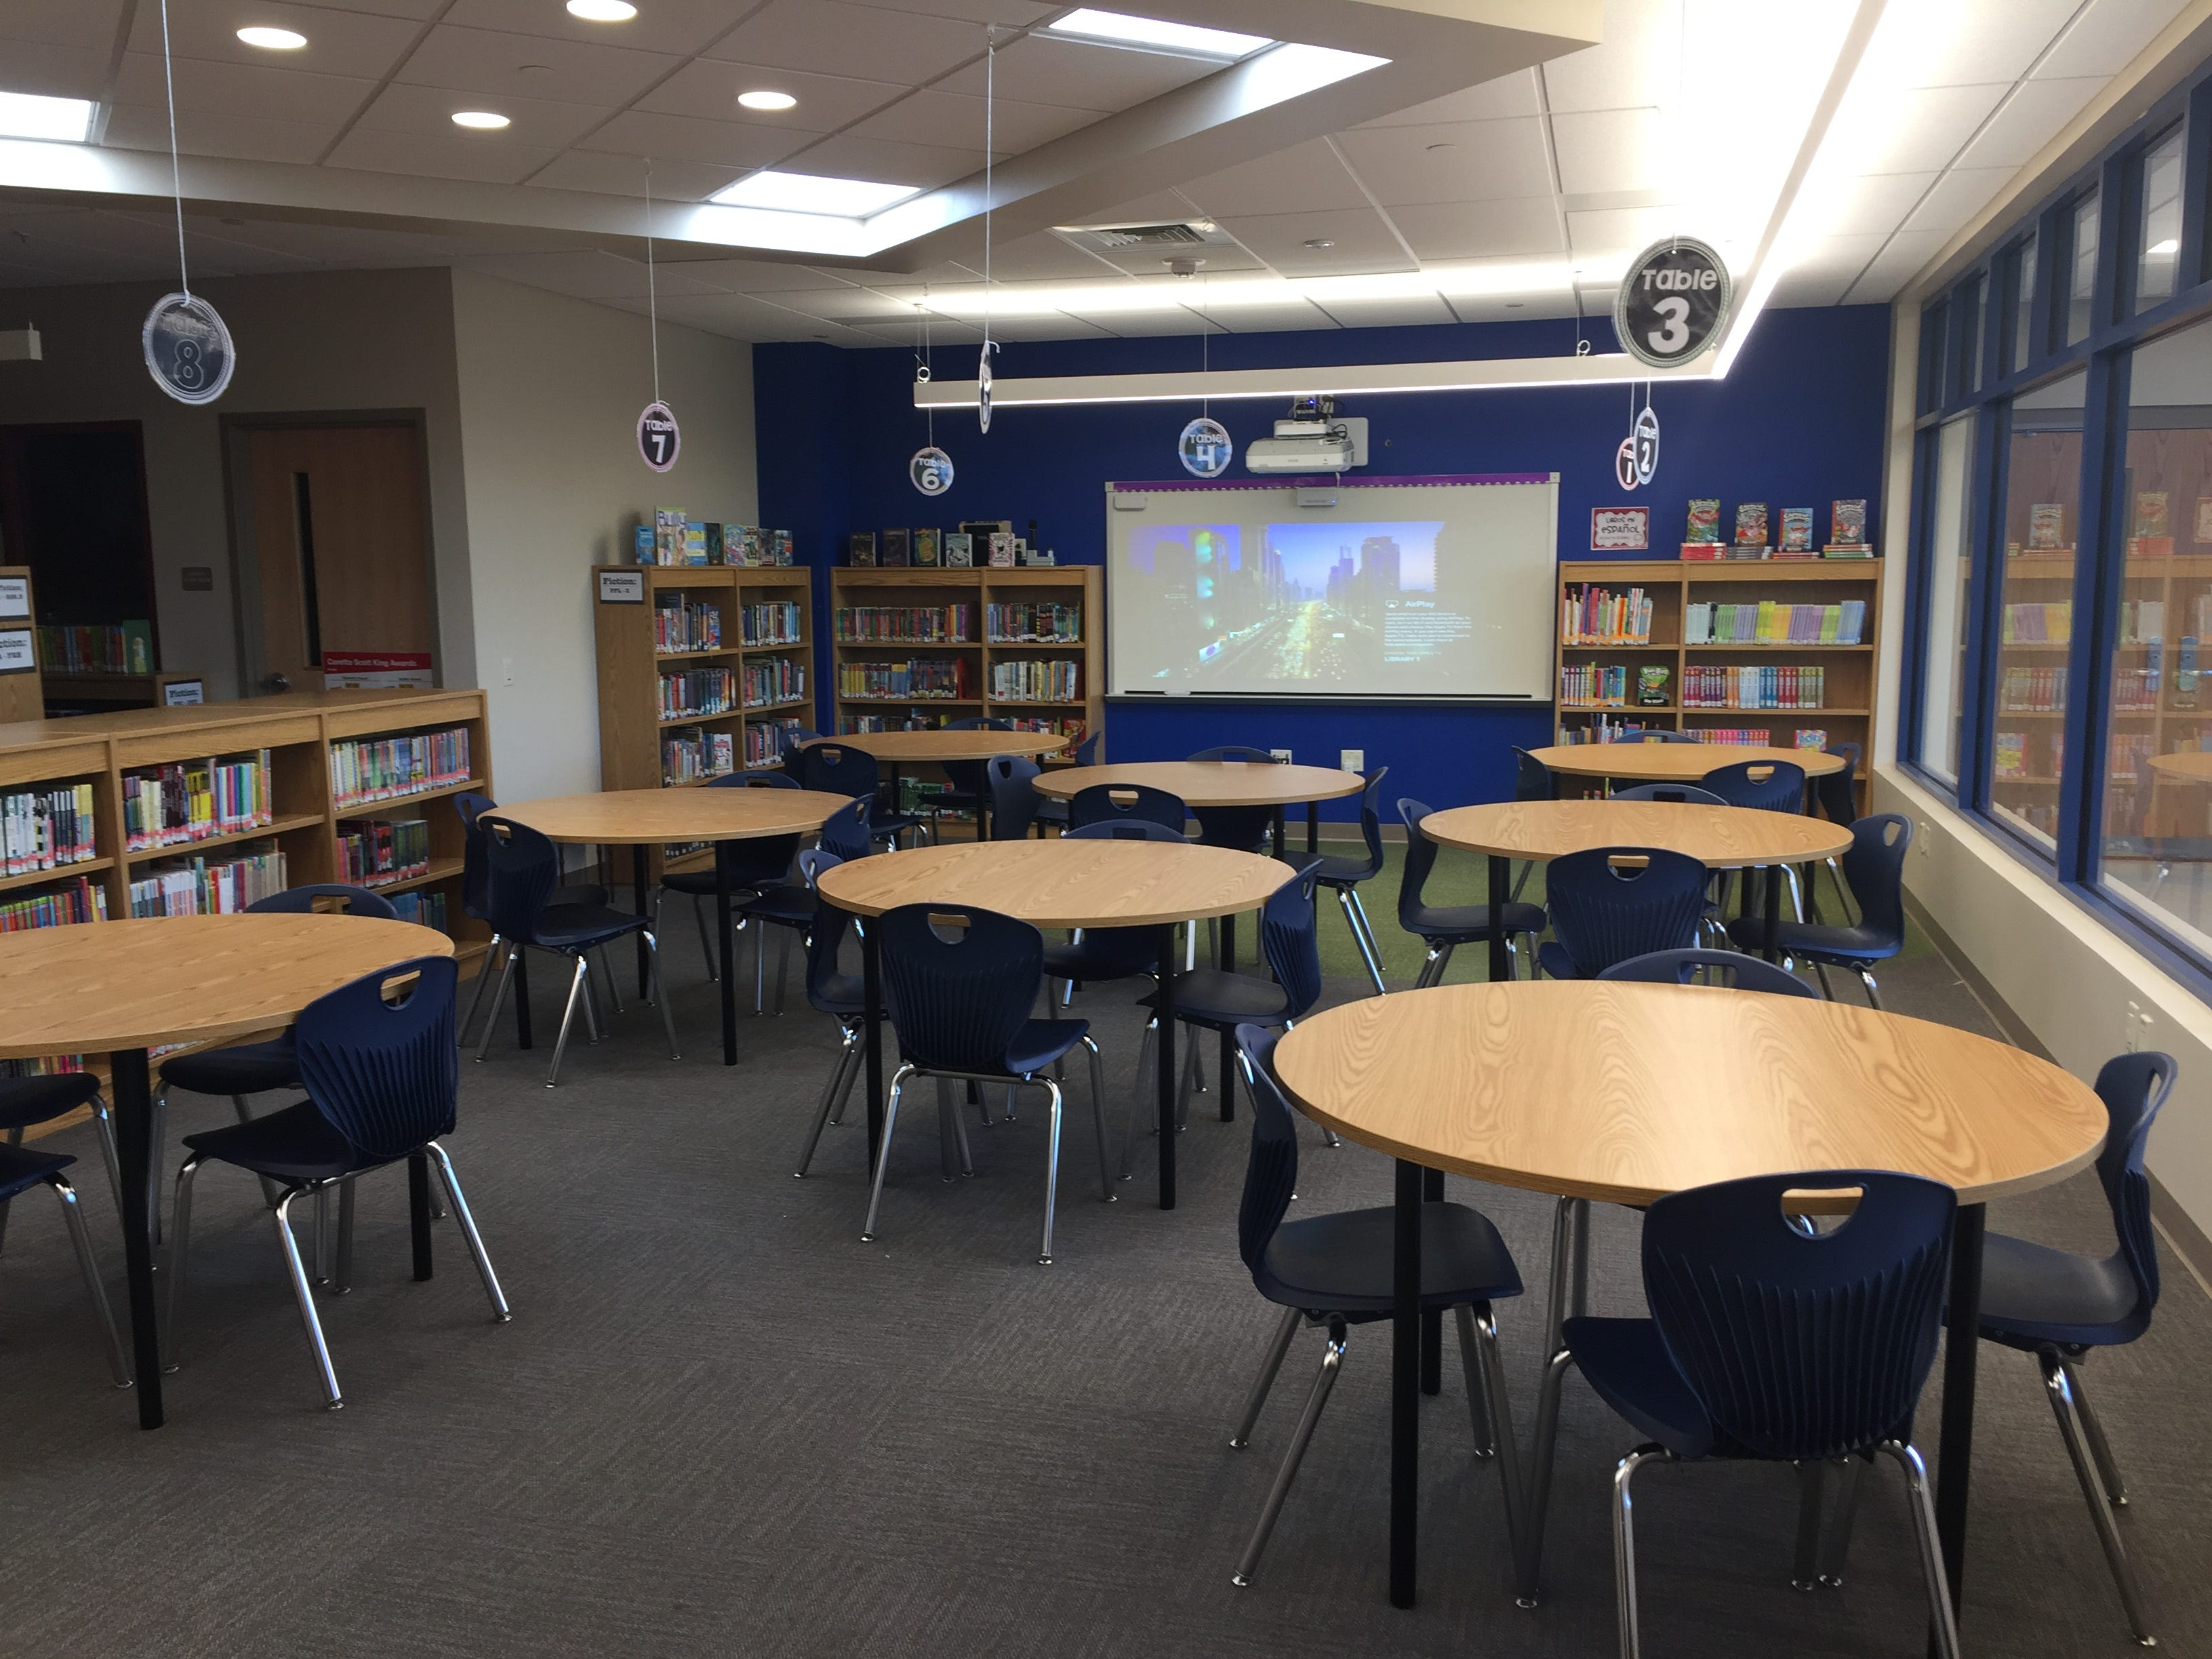 The reading area of the new Northwest Elementary School's library Aug. 23, 2018.